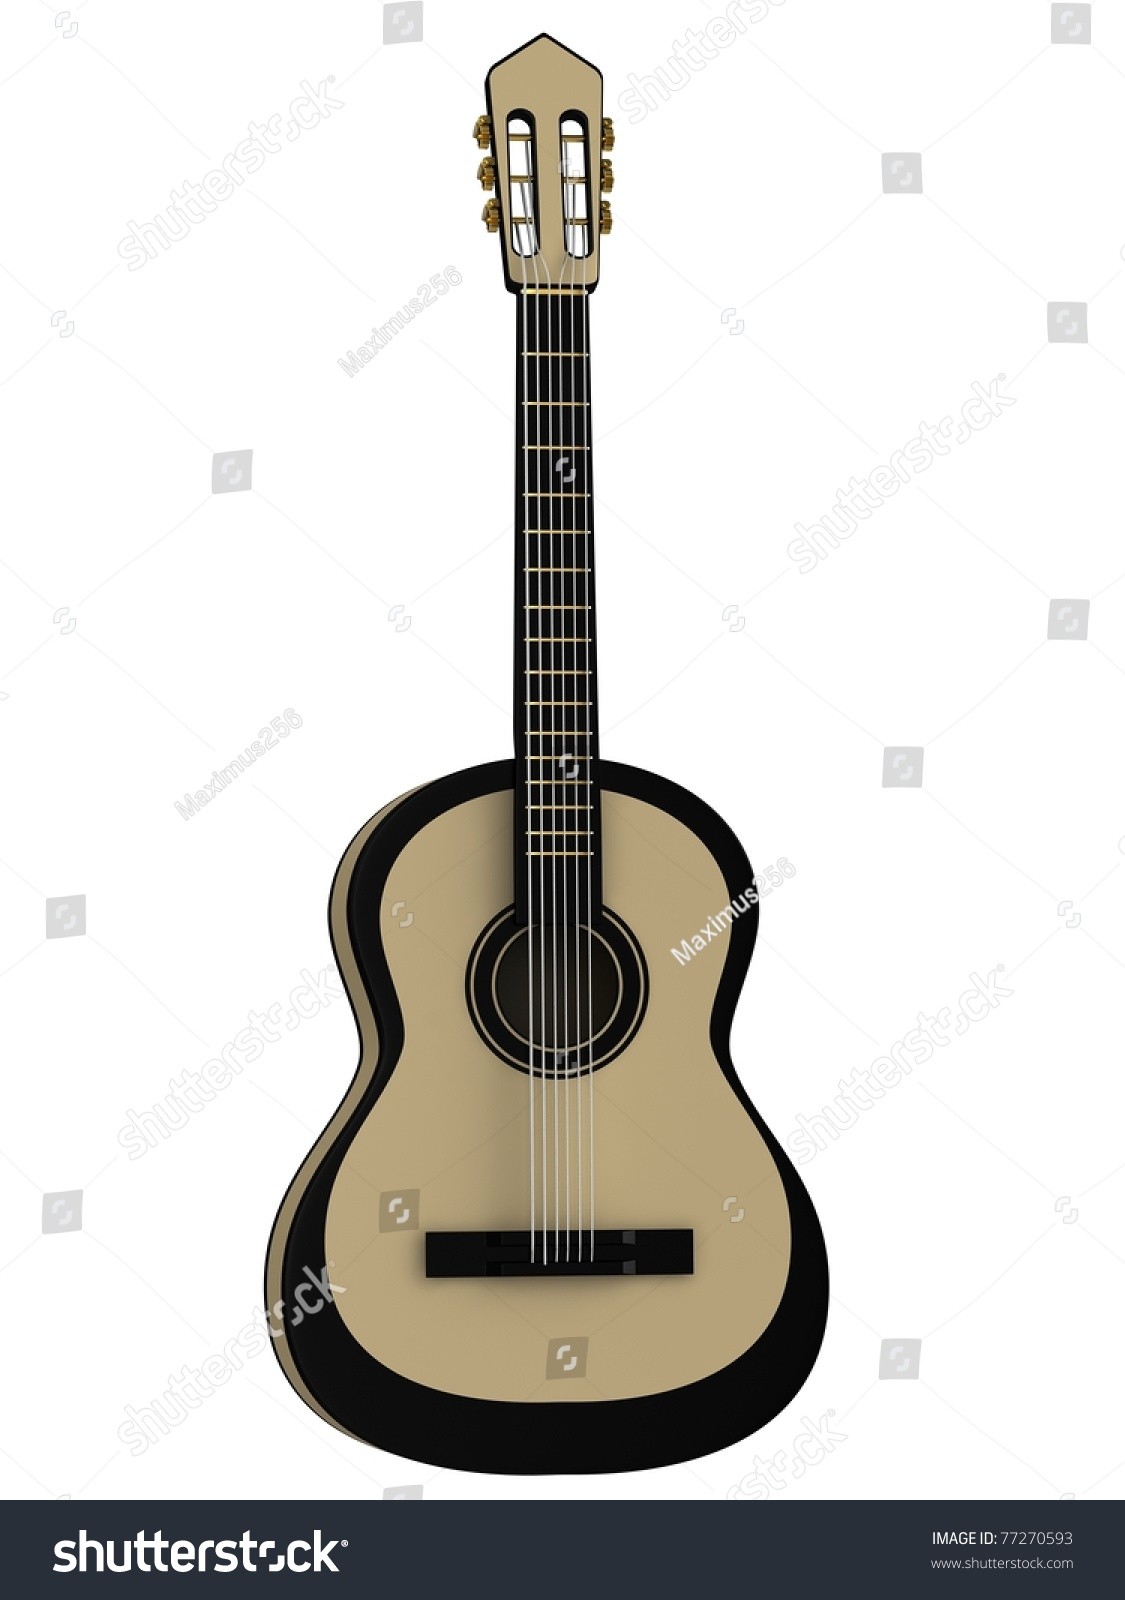 Royalty Free Stock Illustration Of Acoustic Guitar Isolated On White